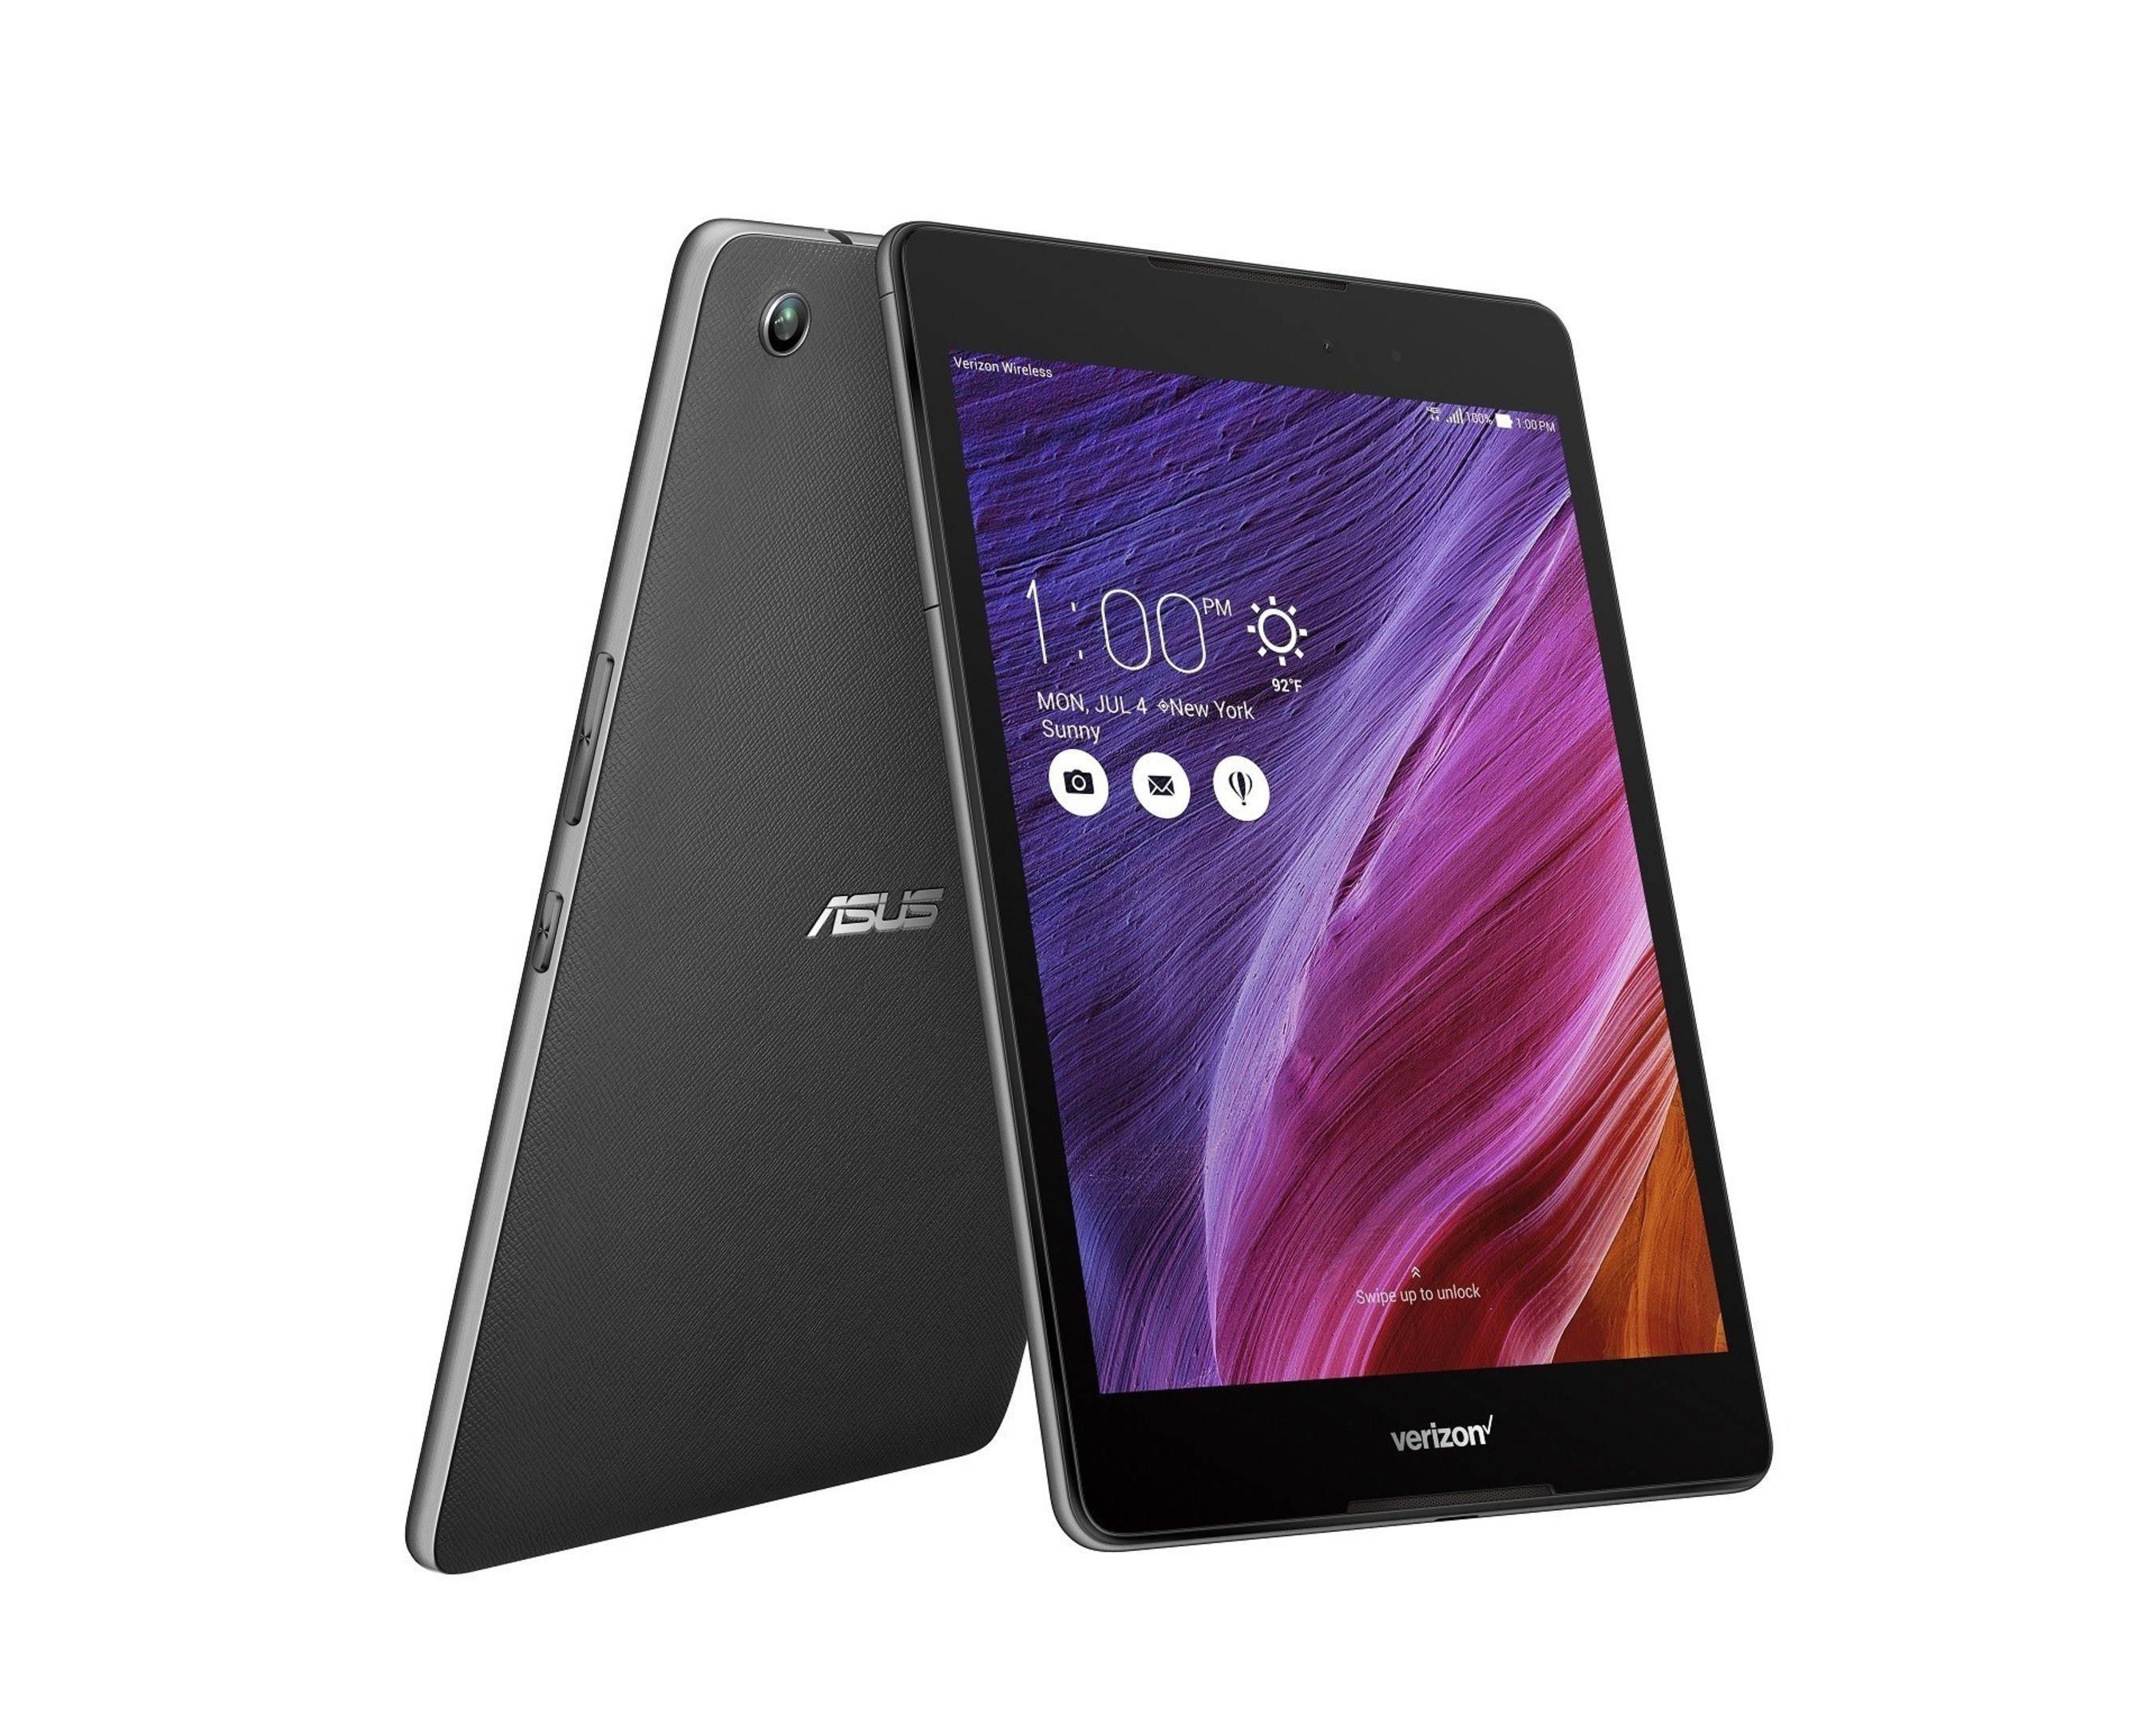 ASUS, Verizon and Qualcomm Technologies, Inc., a subsidiary of Qualcomm Incorporated, today announced that the ASUS ZenPad Z8 tablet, a multimedia powerhouse featuring the Qualcomm(R) Snapdragon(TM) 650 hexa-core processor, is immediately available on America's best network for pre-order exclusively at Verizon at www.verizonwireless.com/tablets/asus-zenpad-z8 and in Verizon retail stores beginning Thursday, June 23. The ASUS ZenPad Z8 is the ultimate entertainment device for watching movies, TV shows,...